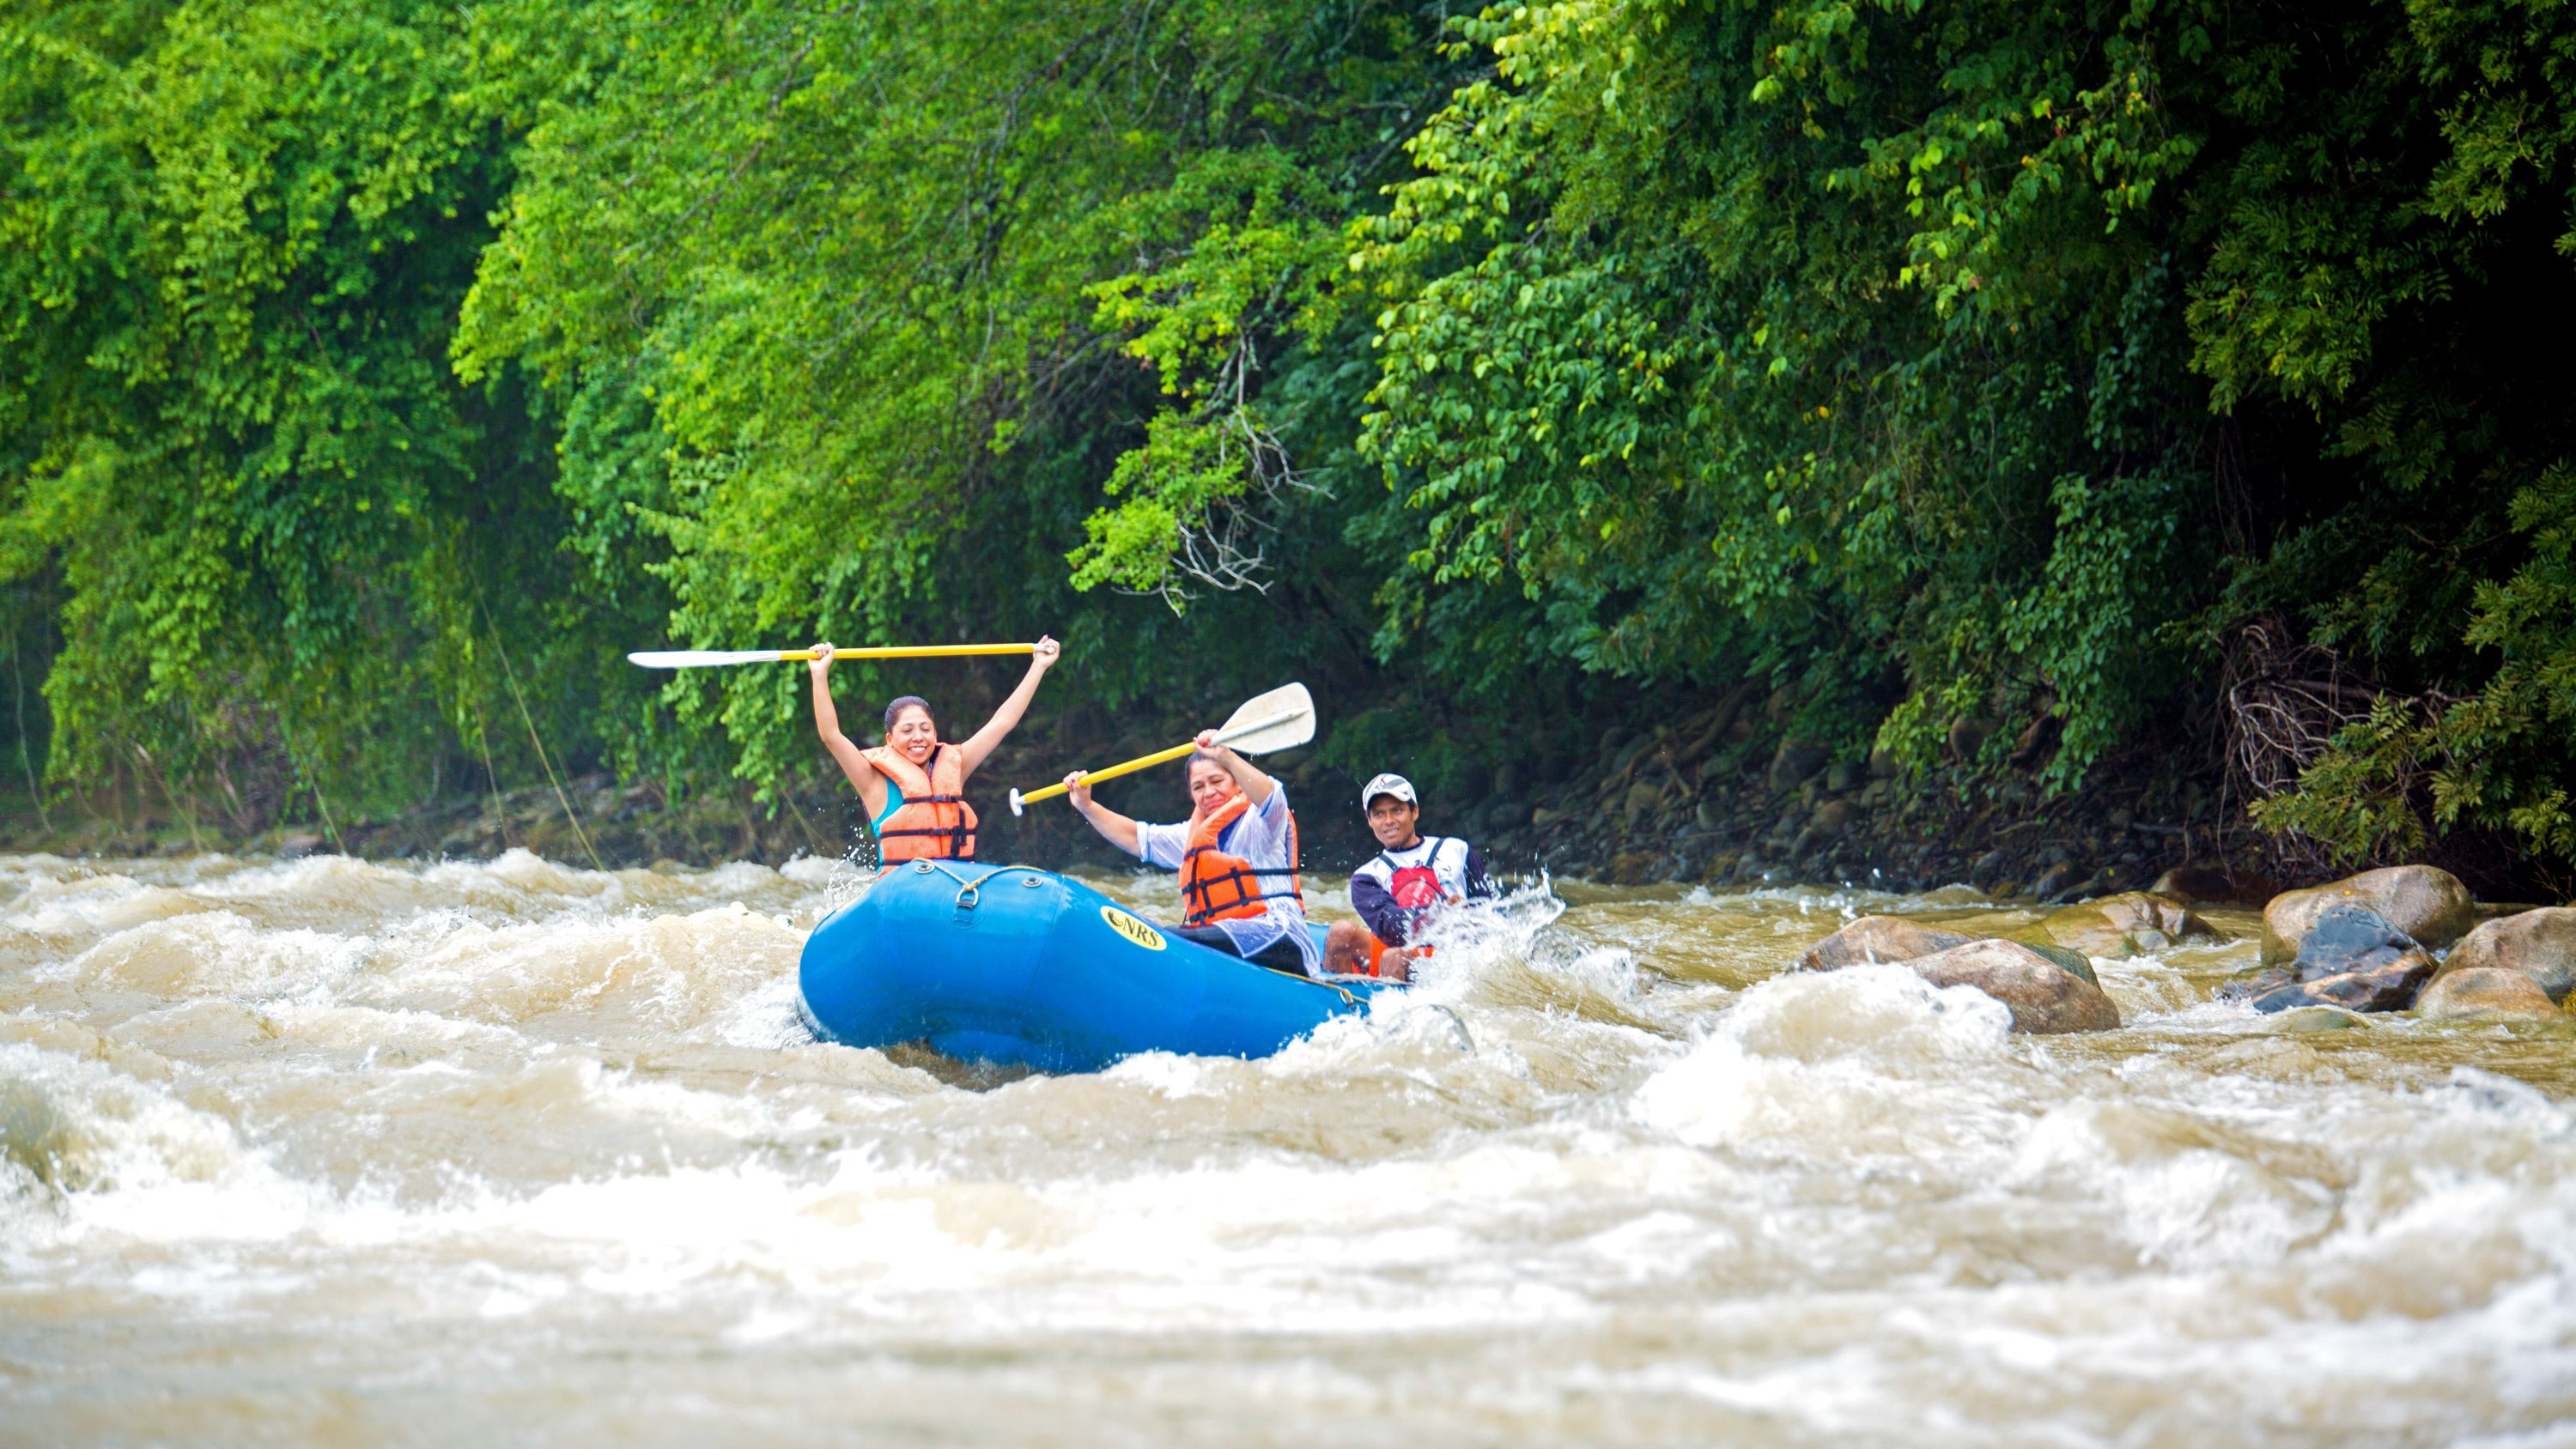 Three rafters ride the rapids on Rio Copalita